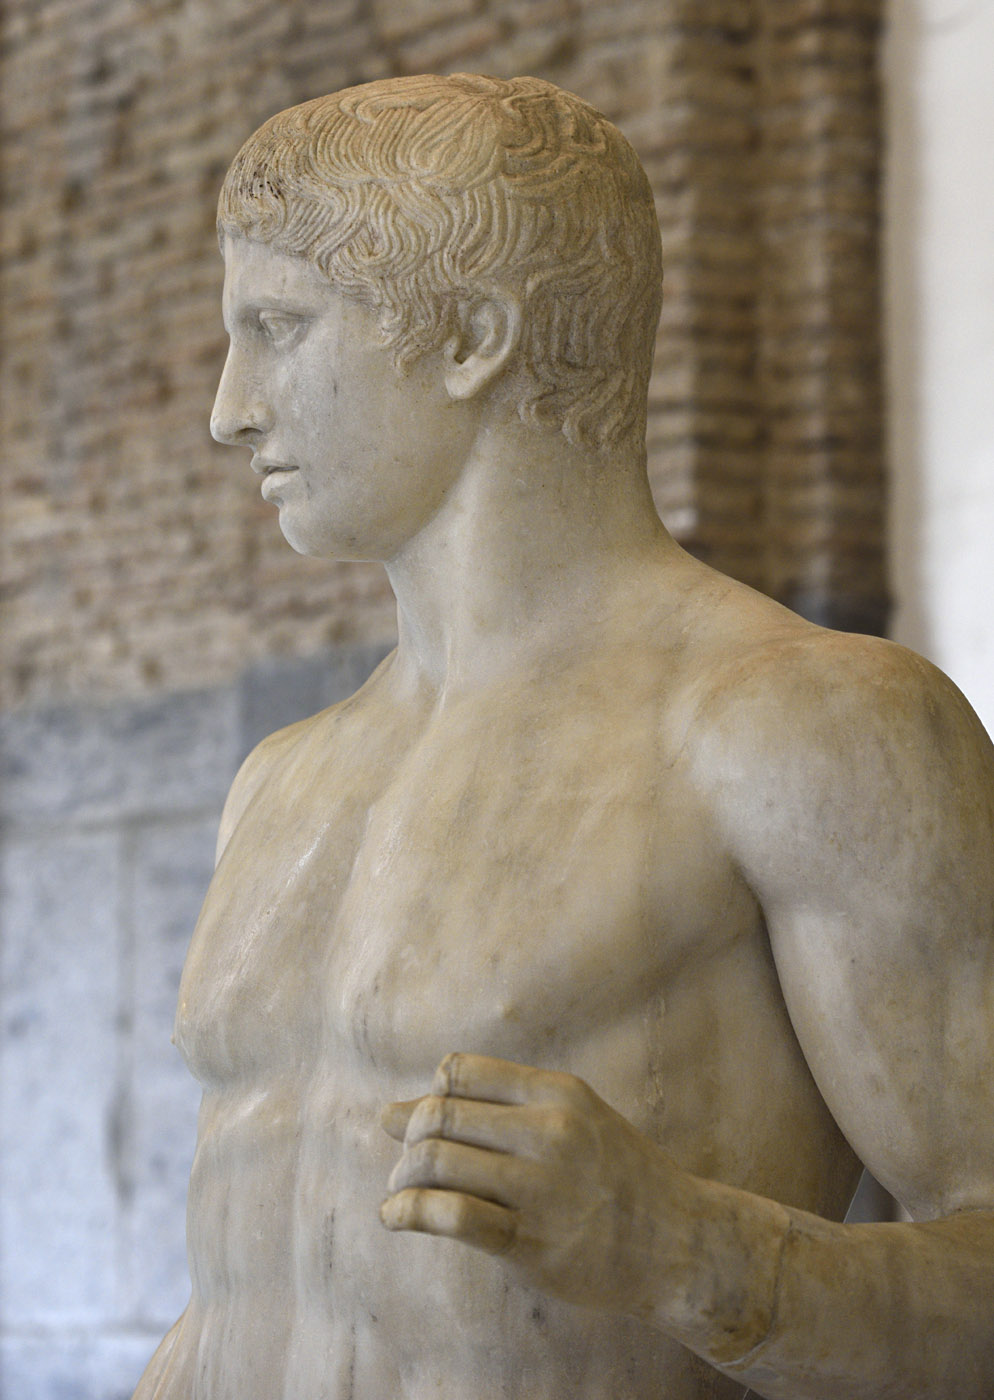 Doryphoros (close-up). Marble. Roman copy after a Greek bronze original by Polykleitos of the 5th century BCE. Inv. No. 6011. Naples, National Archaeological Museum